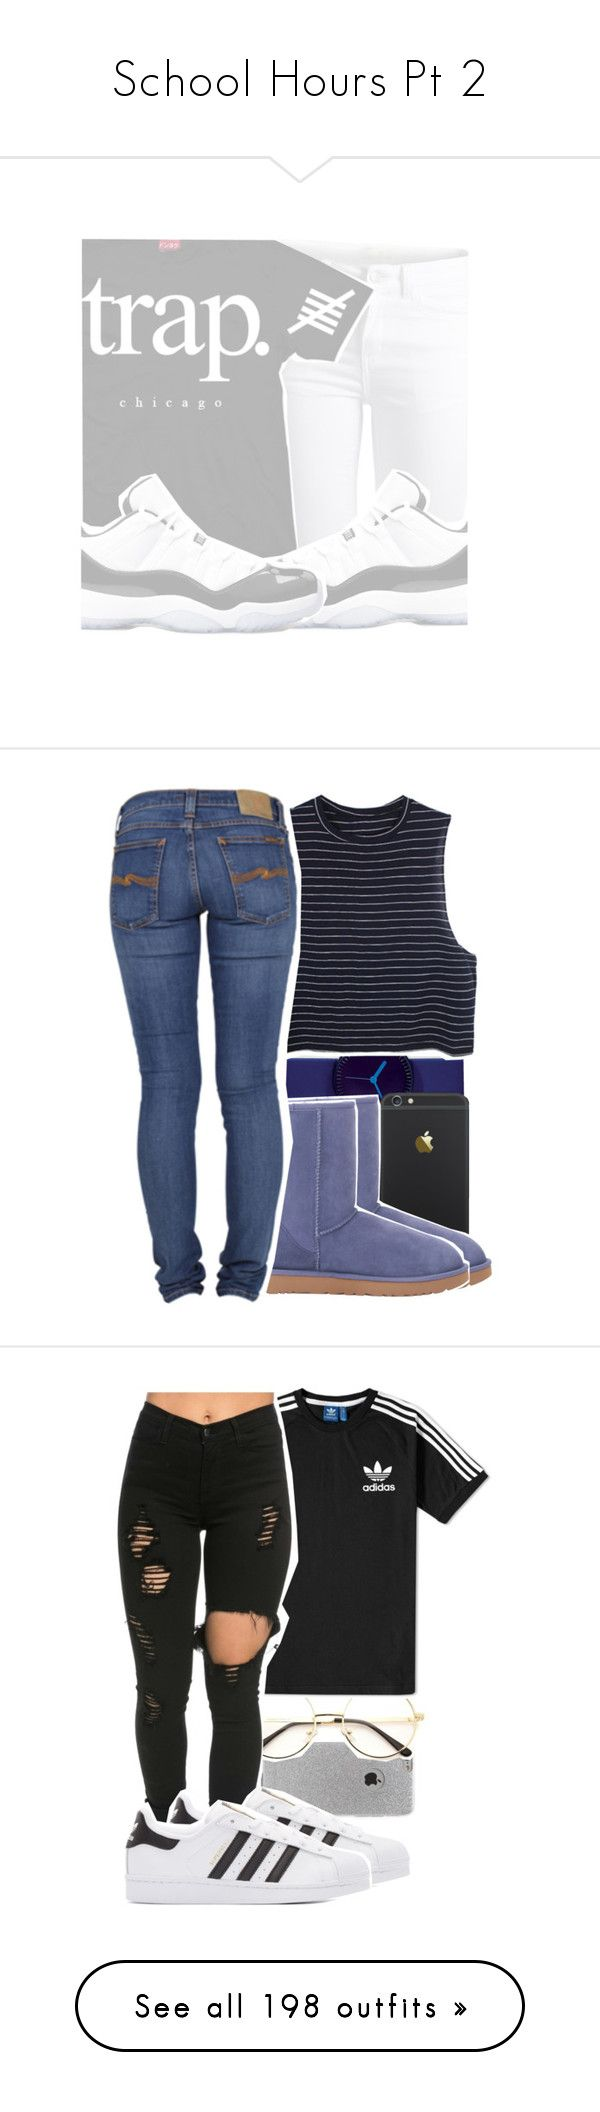 """School Hours Pt 2"" by retrovintagepizza ❤ liked on Polyvore featuring Pieces, Nava, UGG Australia, Nudie Jeans Co., LA: Hearts, adidas, adidas Originals, art, Monki and UGG"